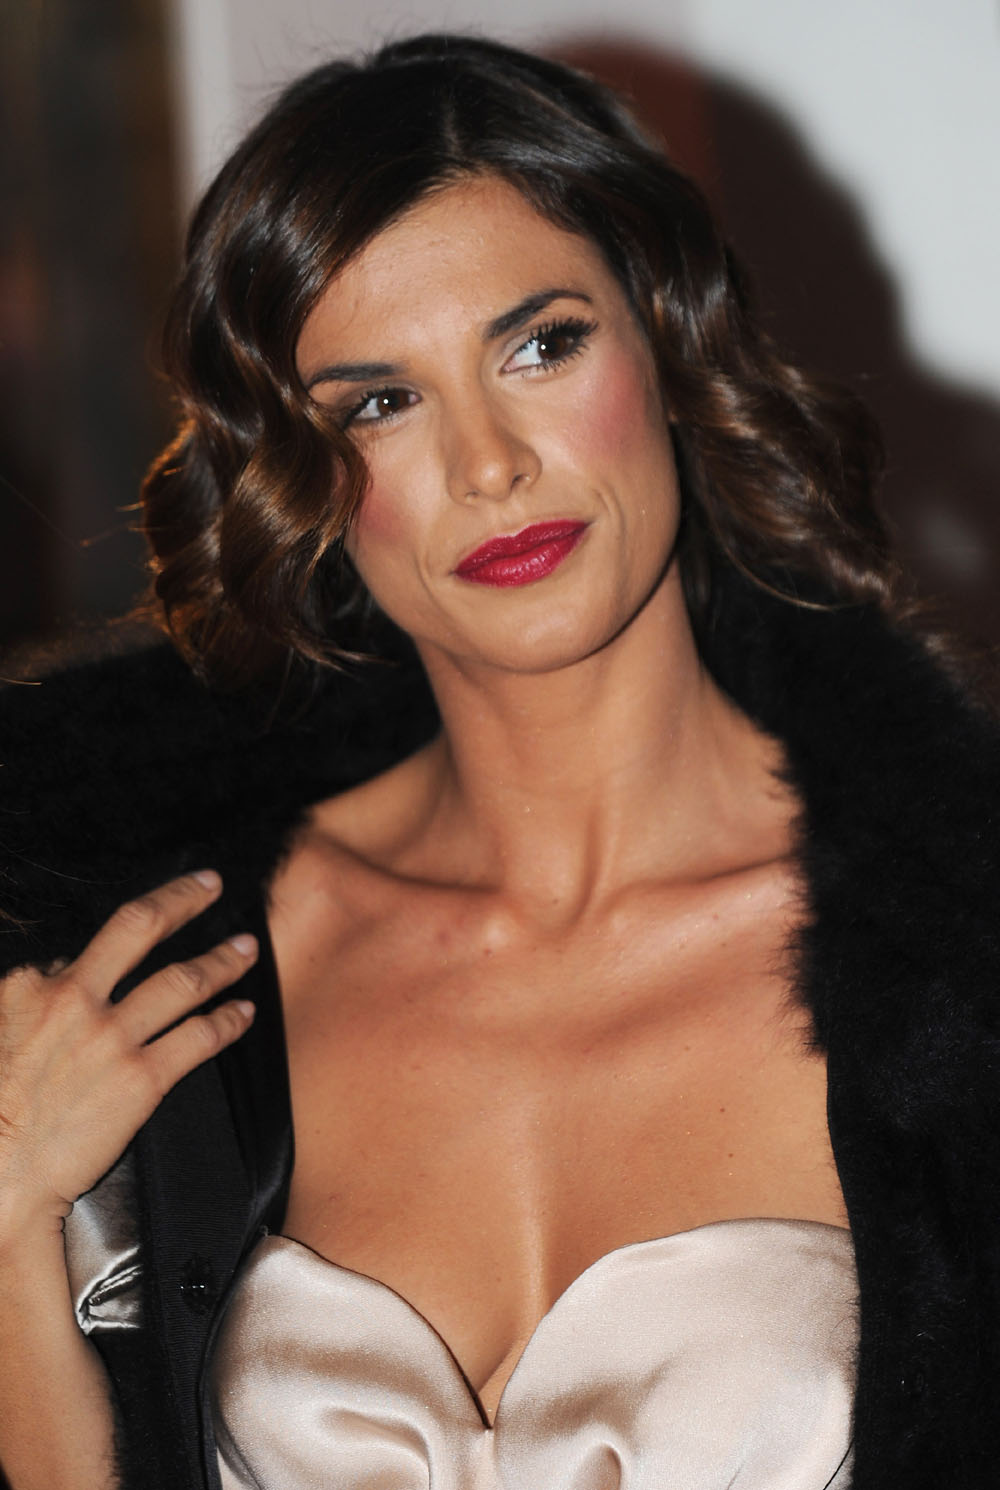 Elisabetta Canalis (born 1978) nude photos 2019